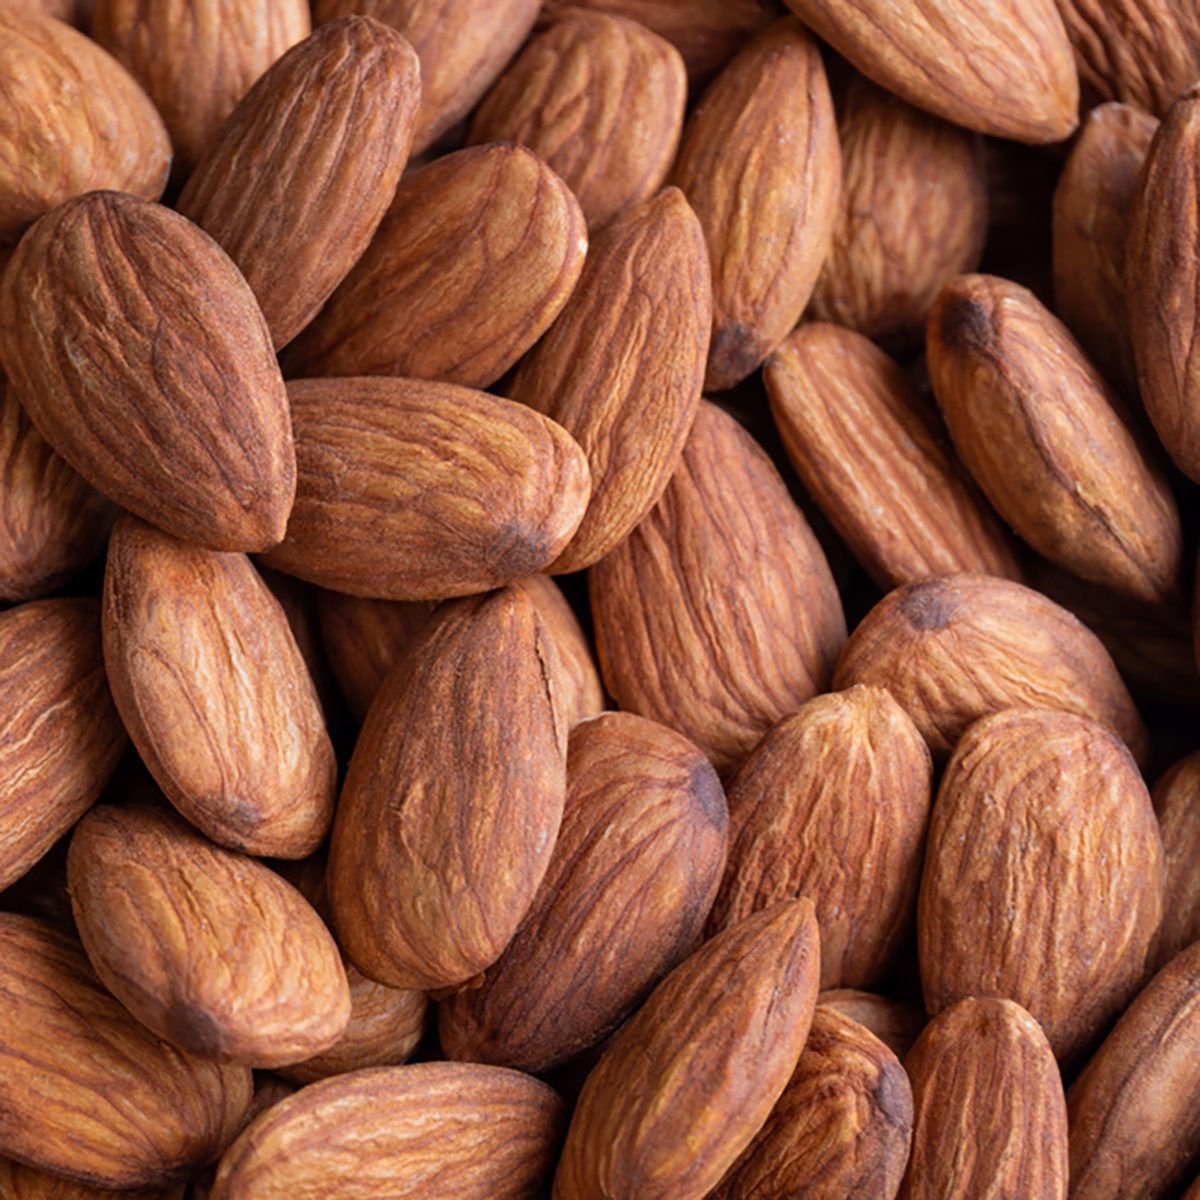 Close-up of Almond Kernels